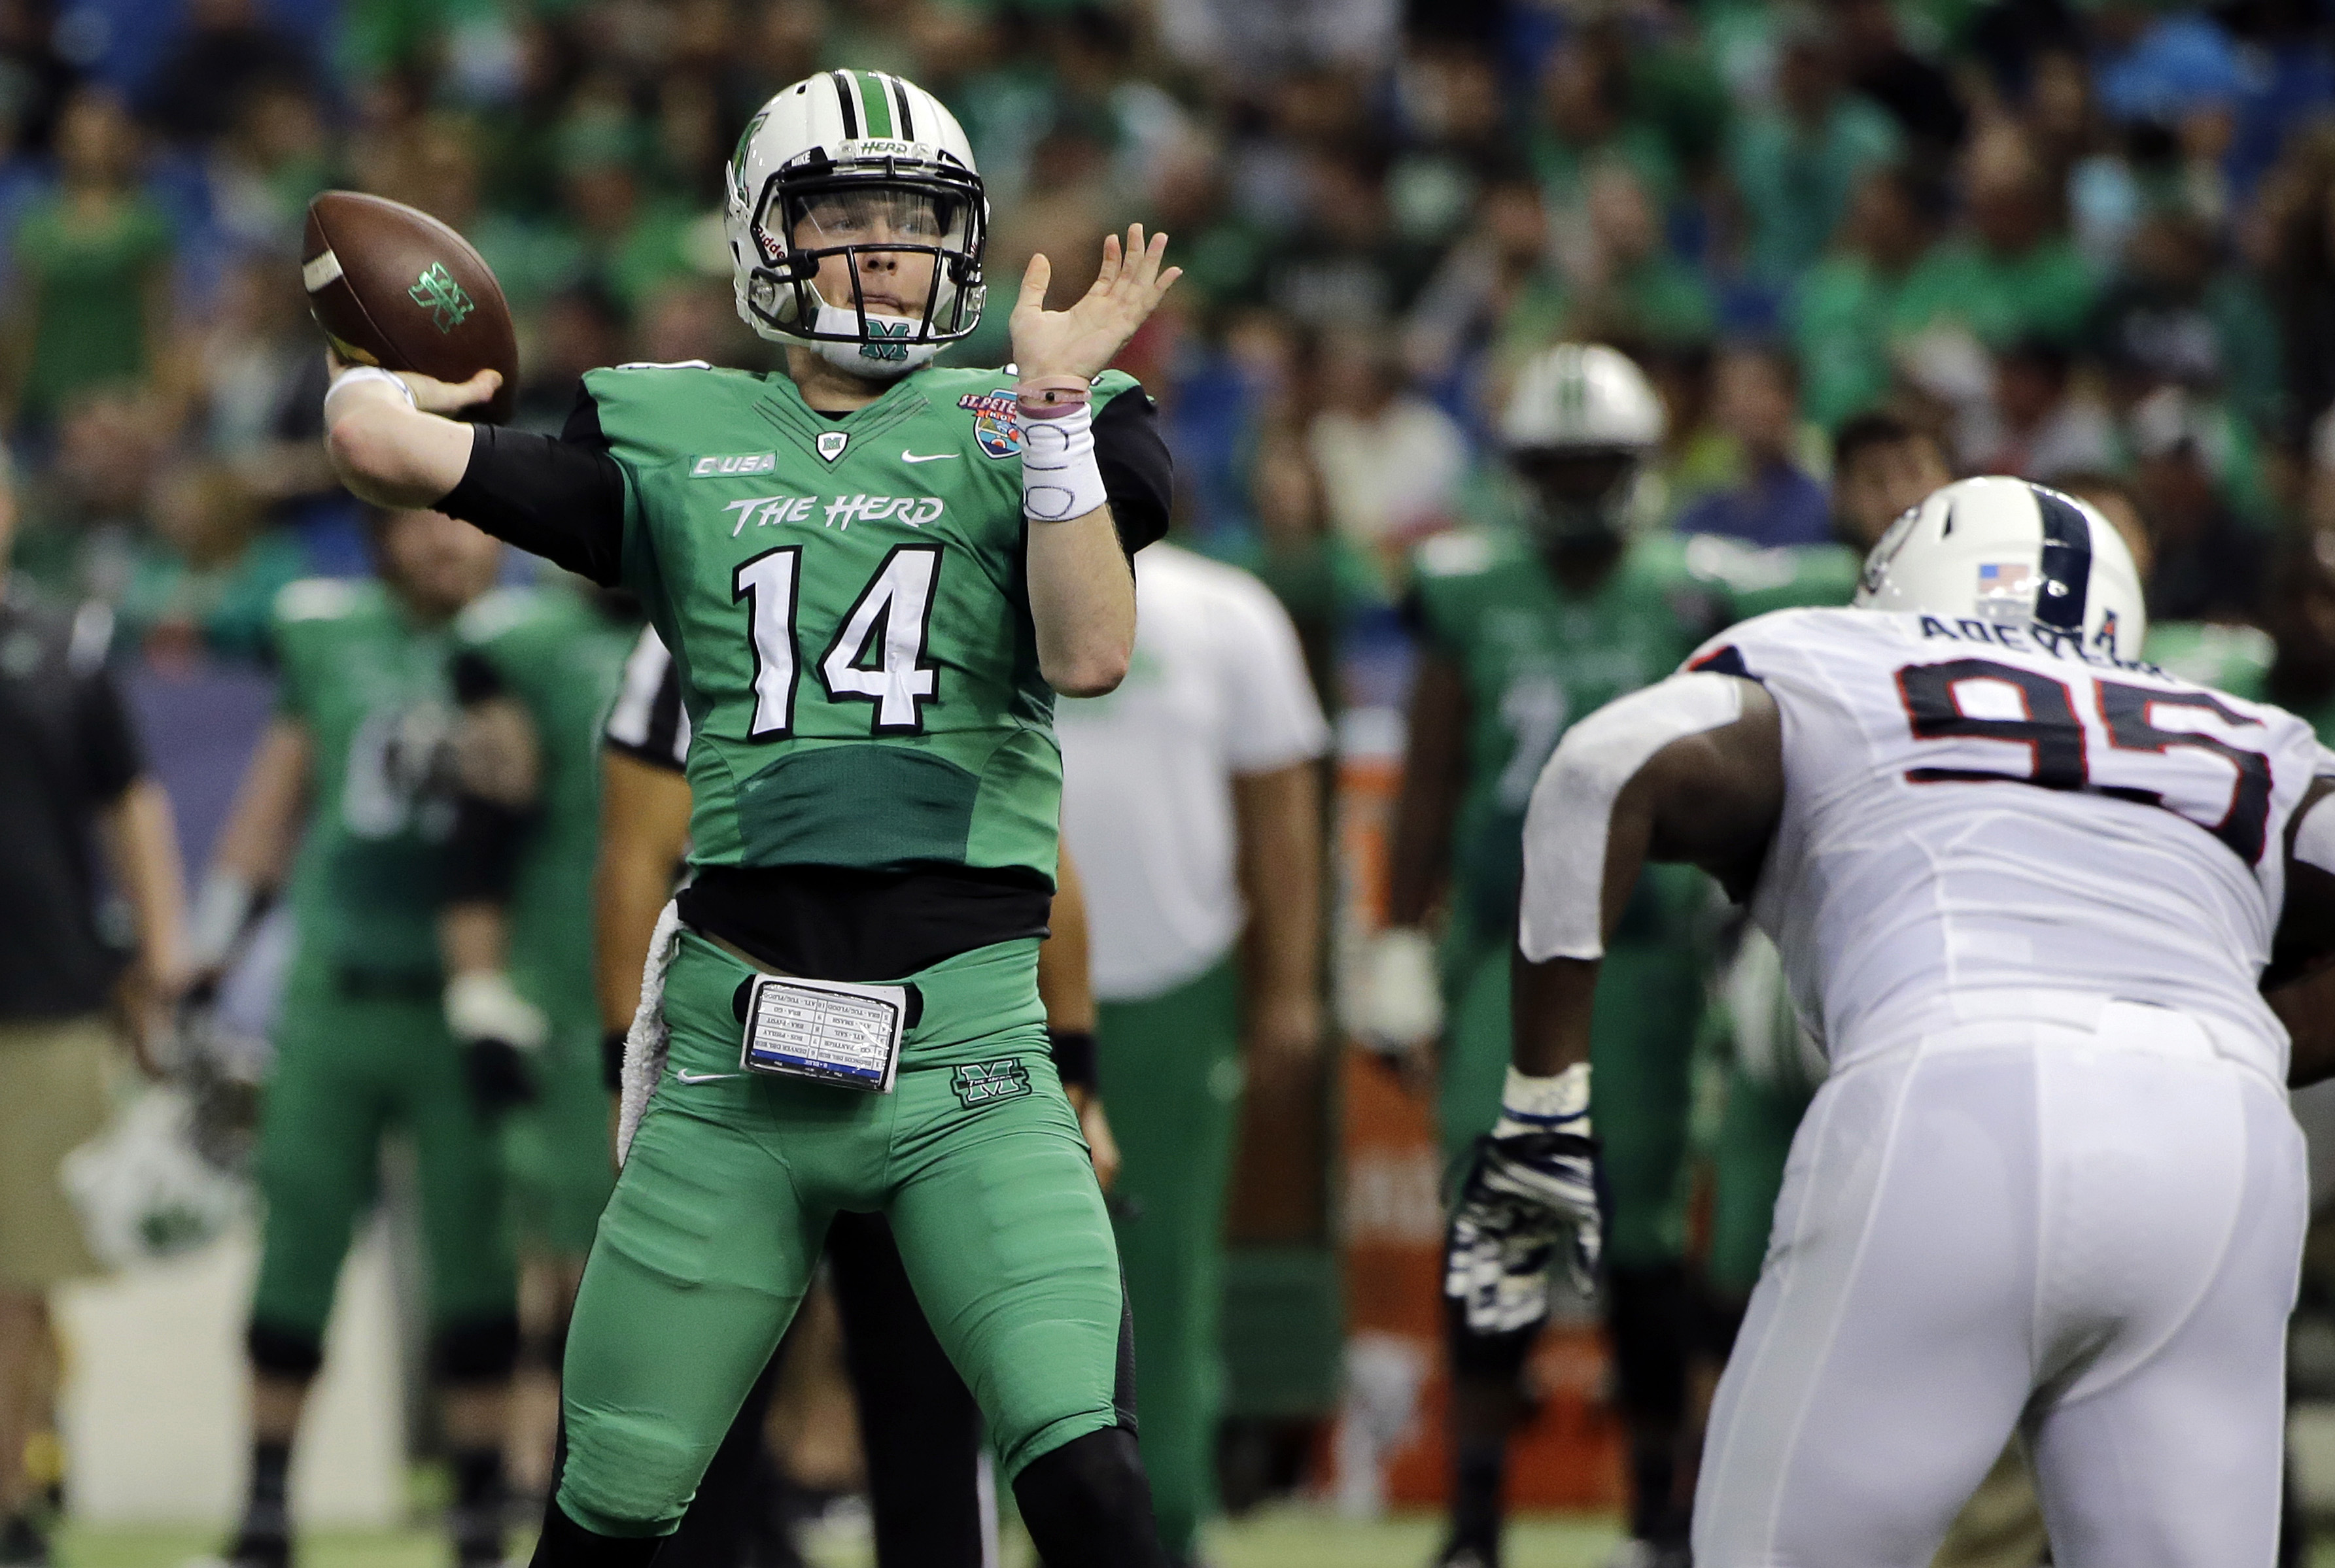 Marshall quarterback Chase Litton (14) is pressured by Connecticut defensive lineman Kenton Adeyemi (95) as he throws a touchdown pass to tight end Ryan Yurachek during the first quarter of the St. Petersburg Bowl NCAA college football game, Saturday, Dec